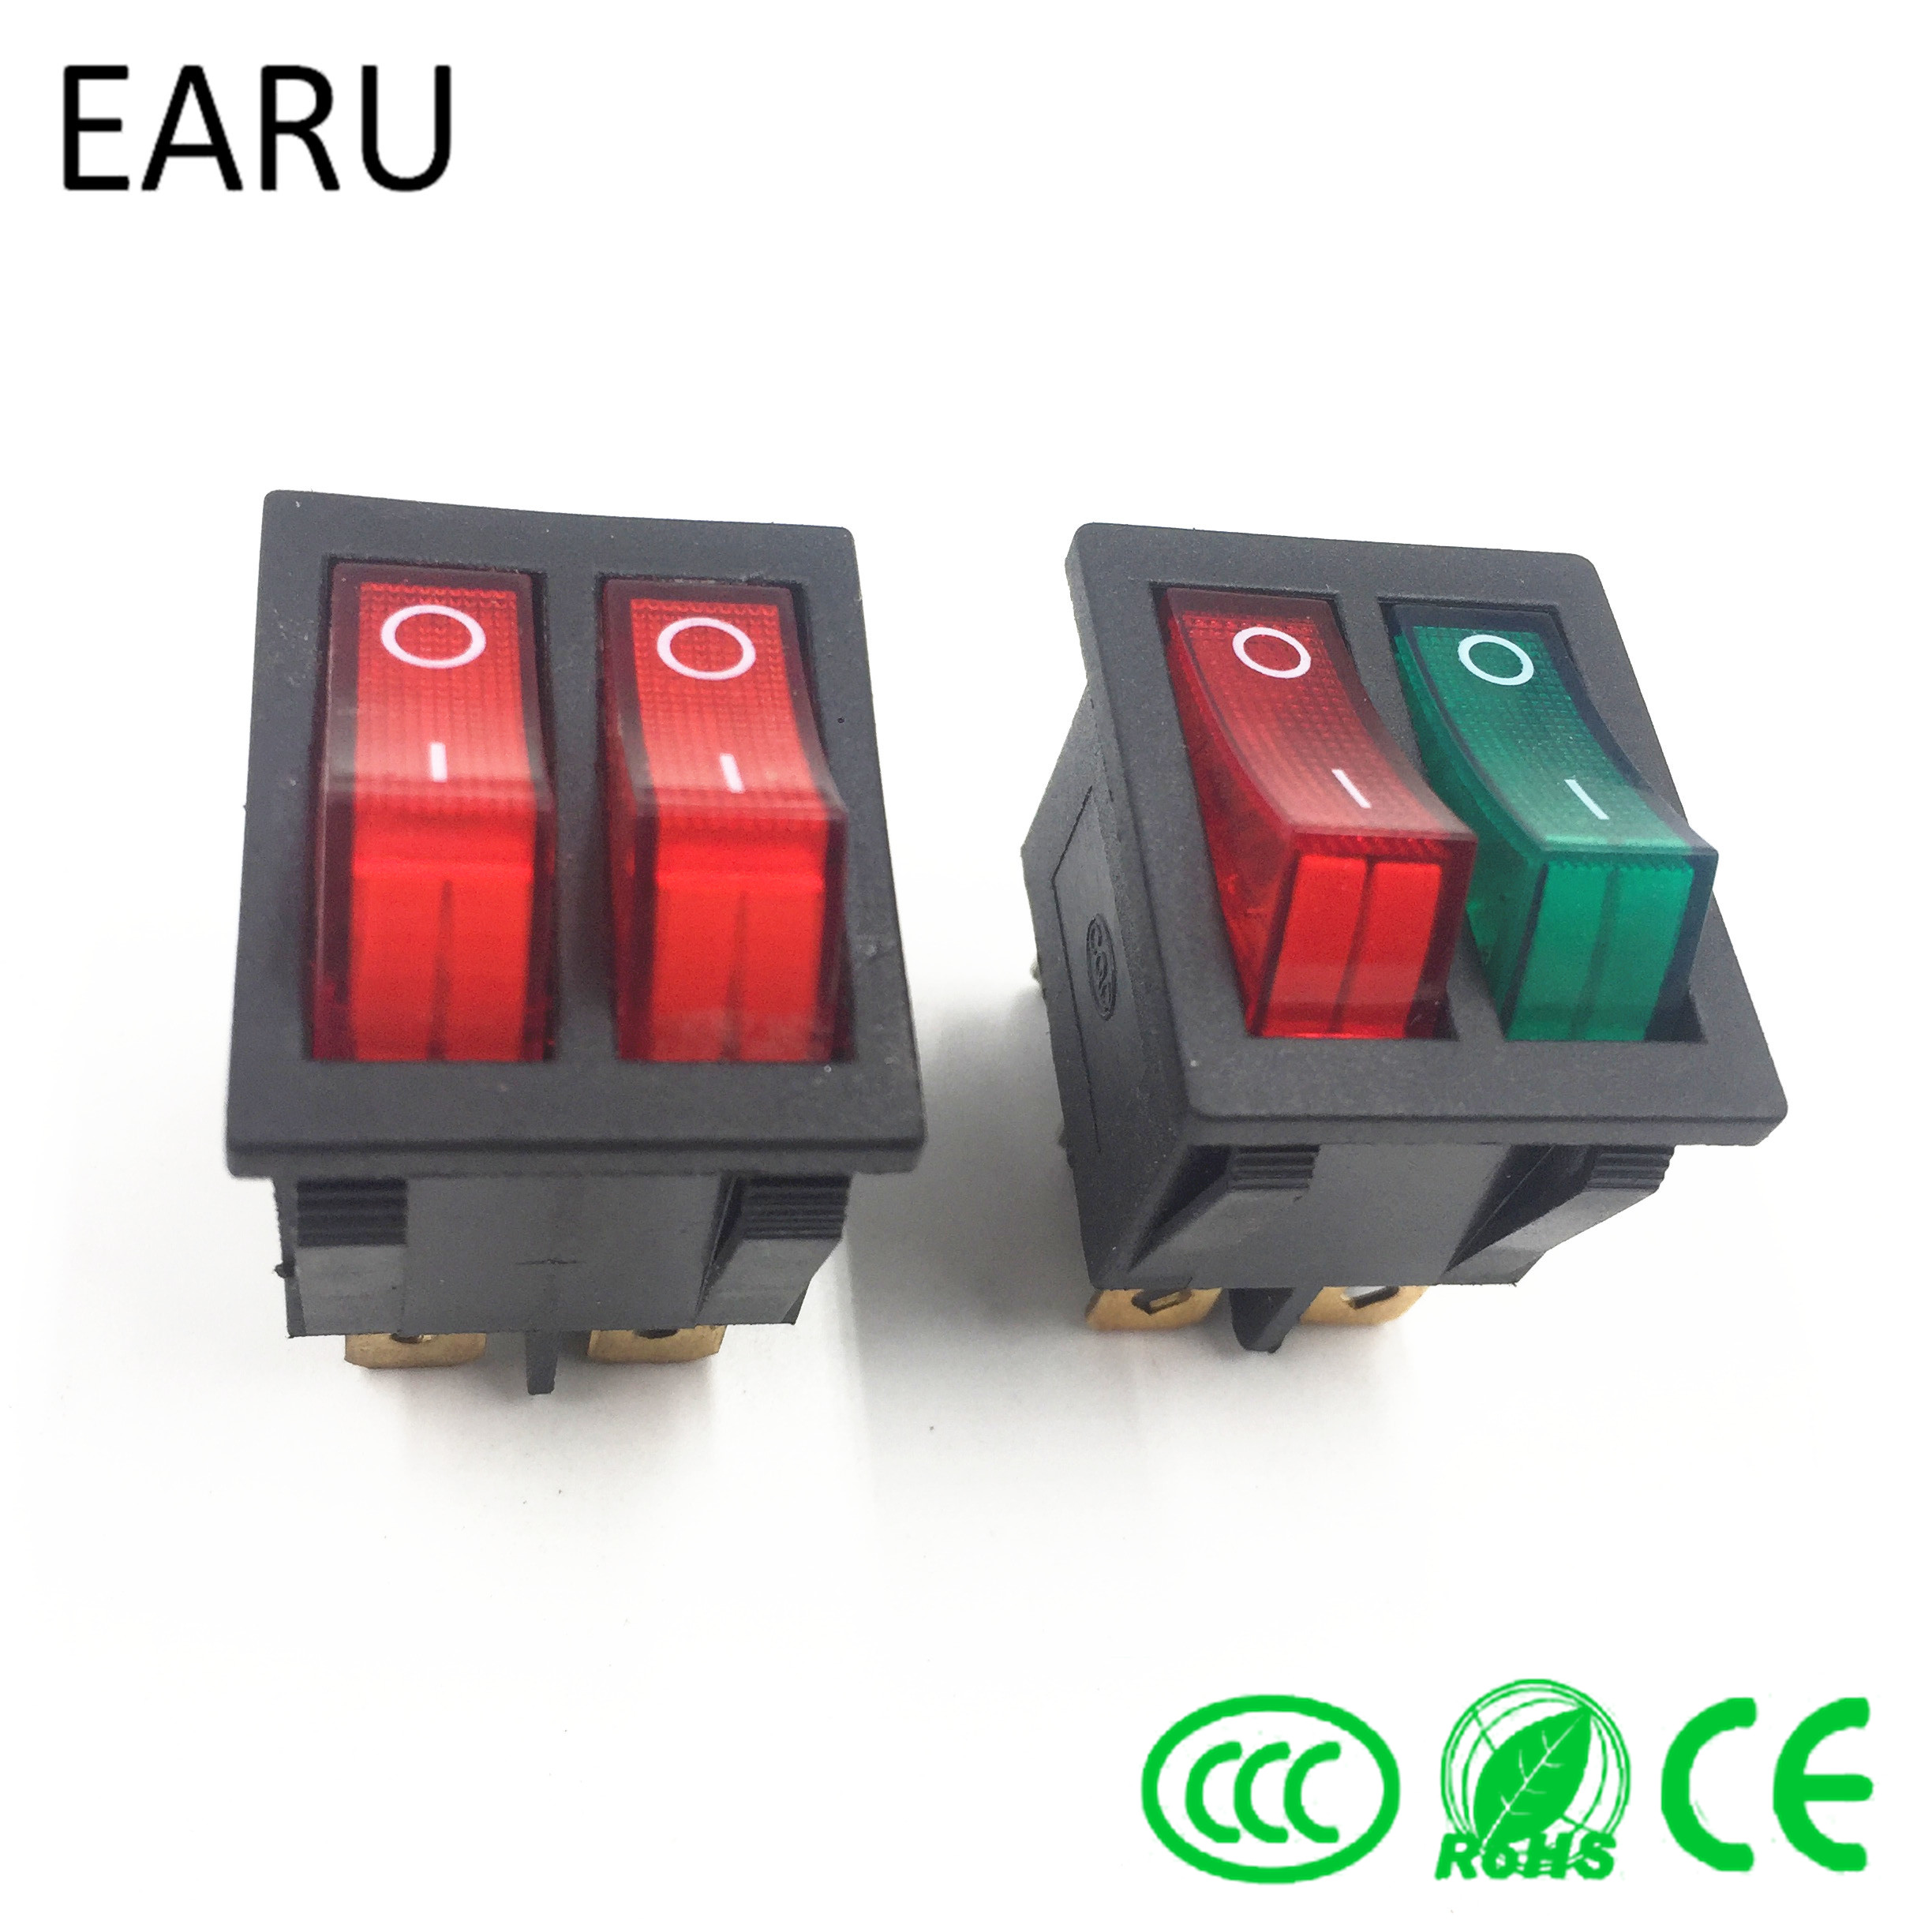 1pc DIY Model KCD3 Double Boat Rocker Switch Toggle 6 Pin On-Off With Green Red Light 20A 125VAC Factory Online Wholesale Hot дефлектор капота volkswagen капота golf vii 2012–н в classic прозрачный